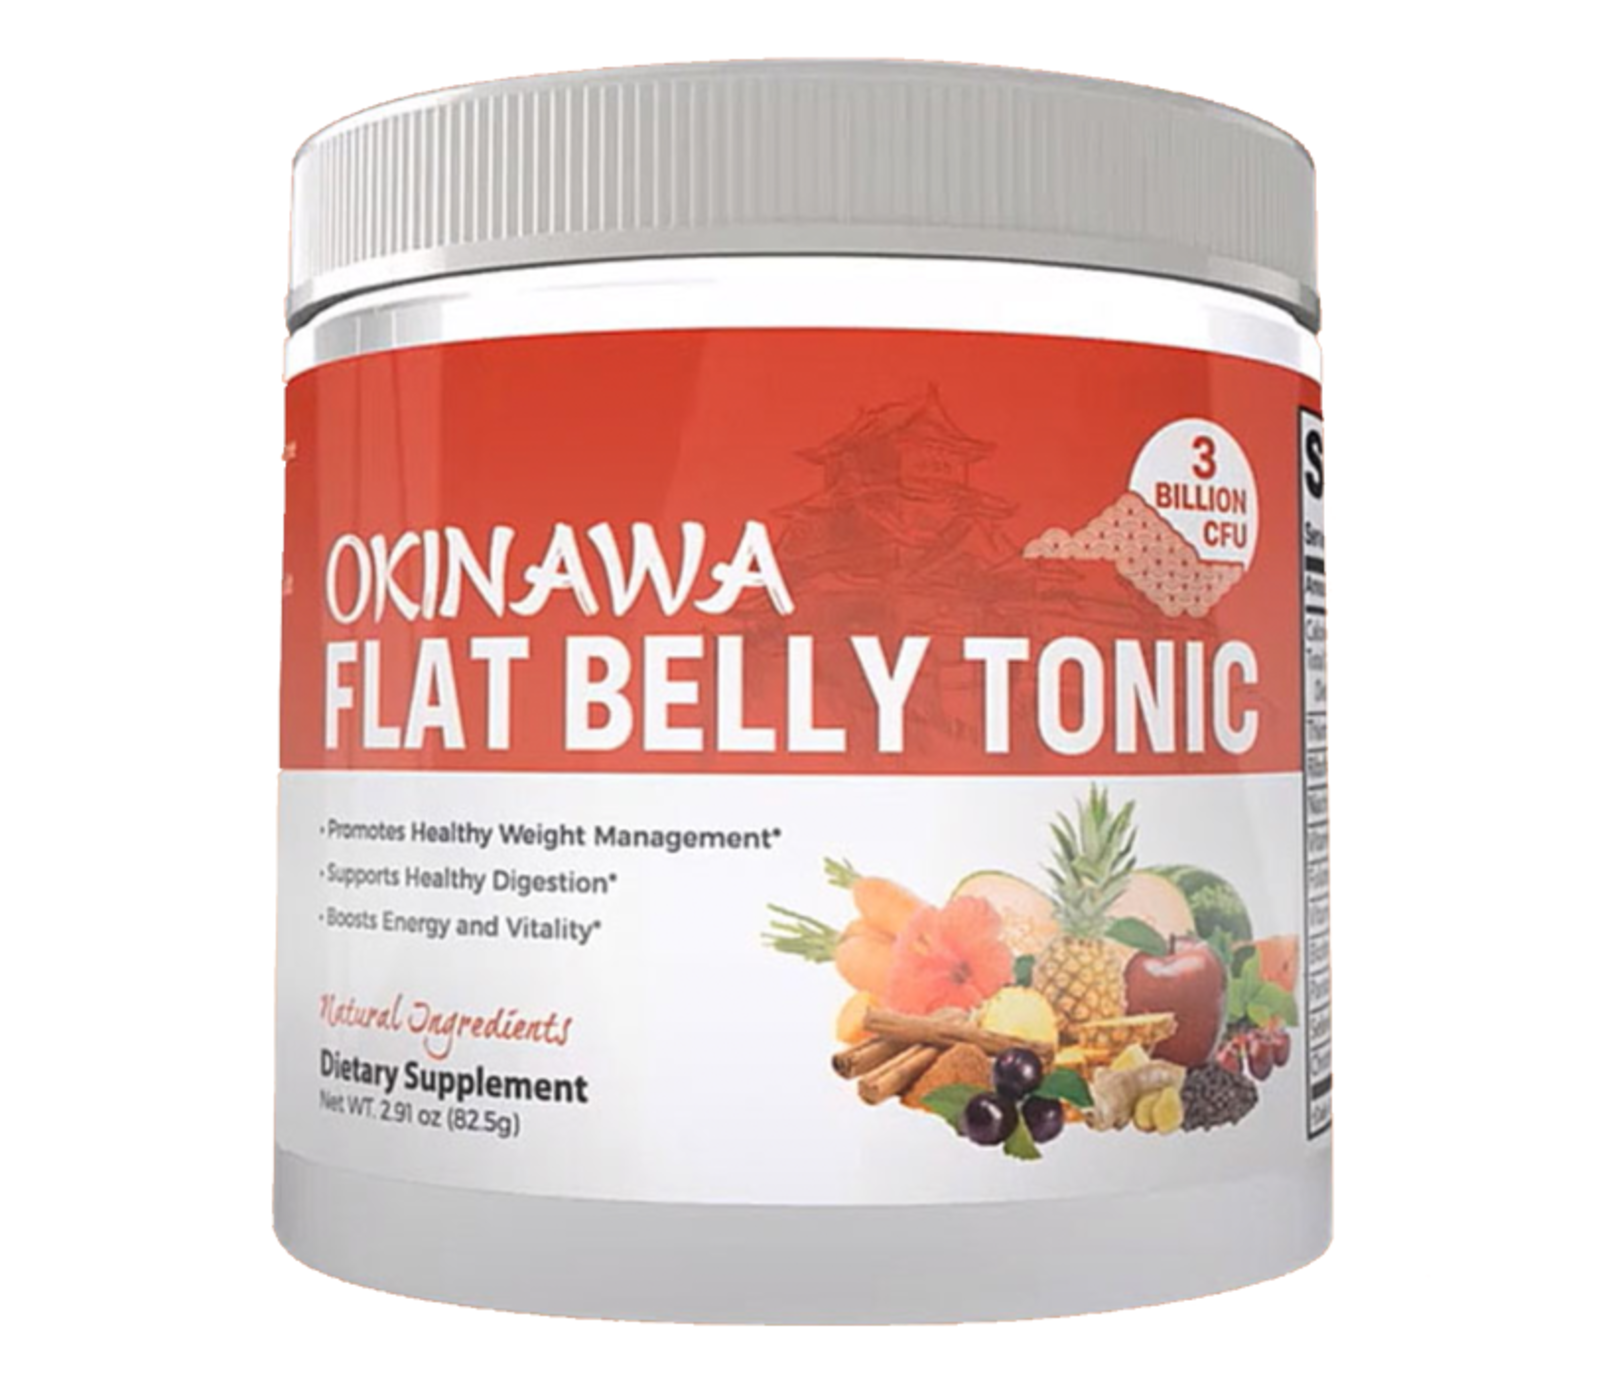 Get The Best Okinawa Flat Belly Tonic